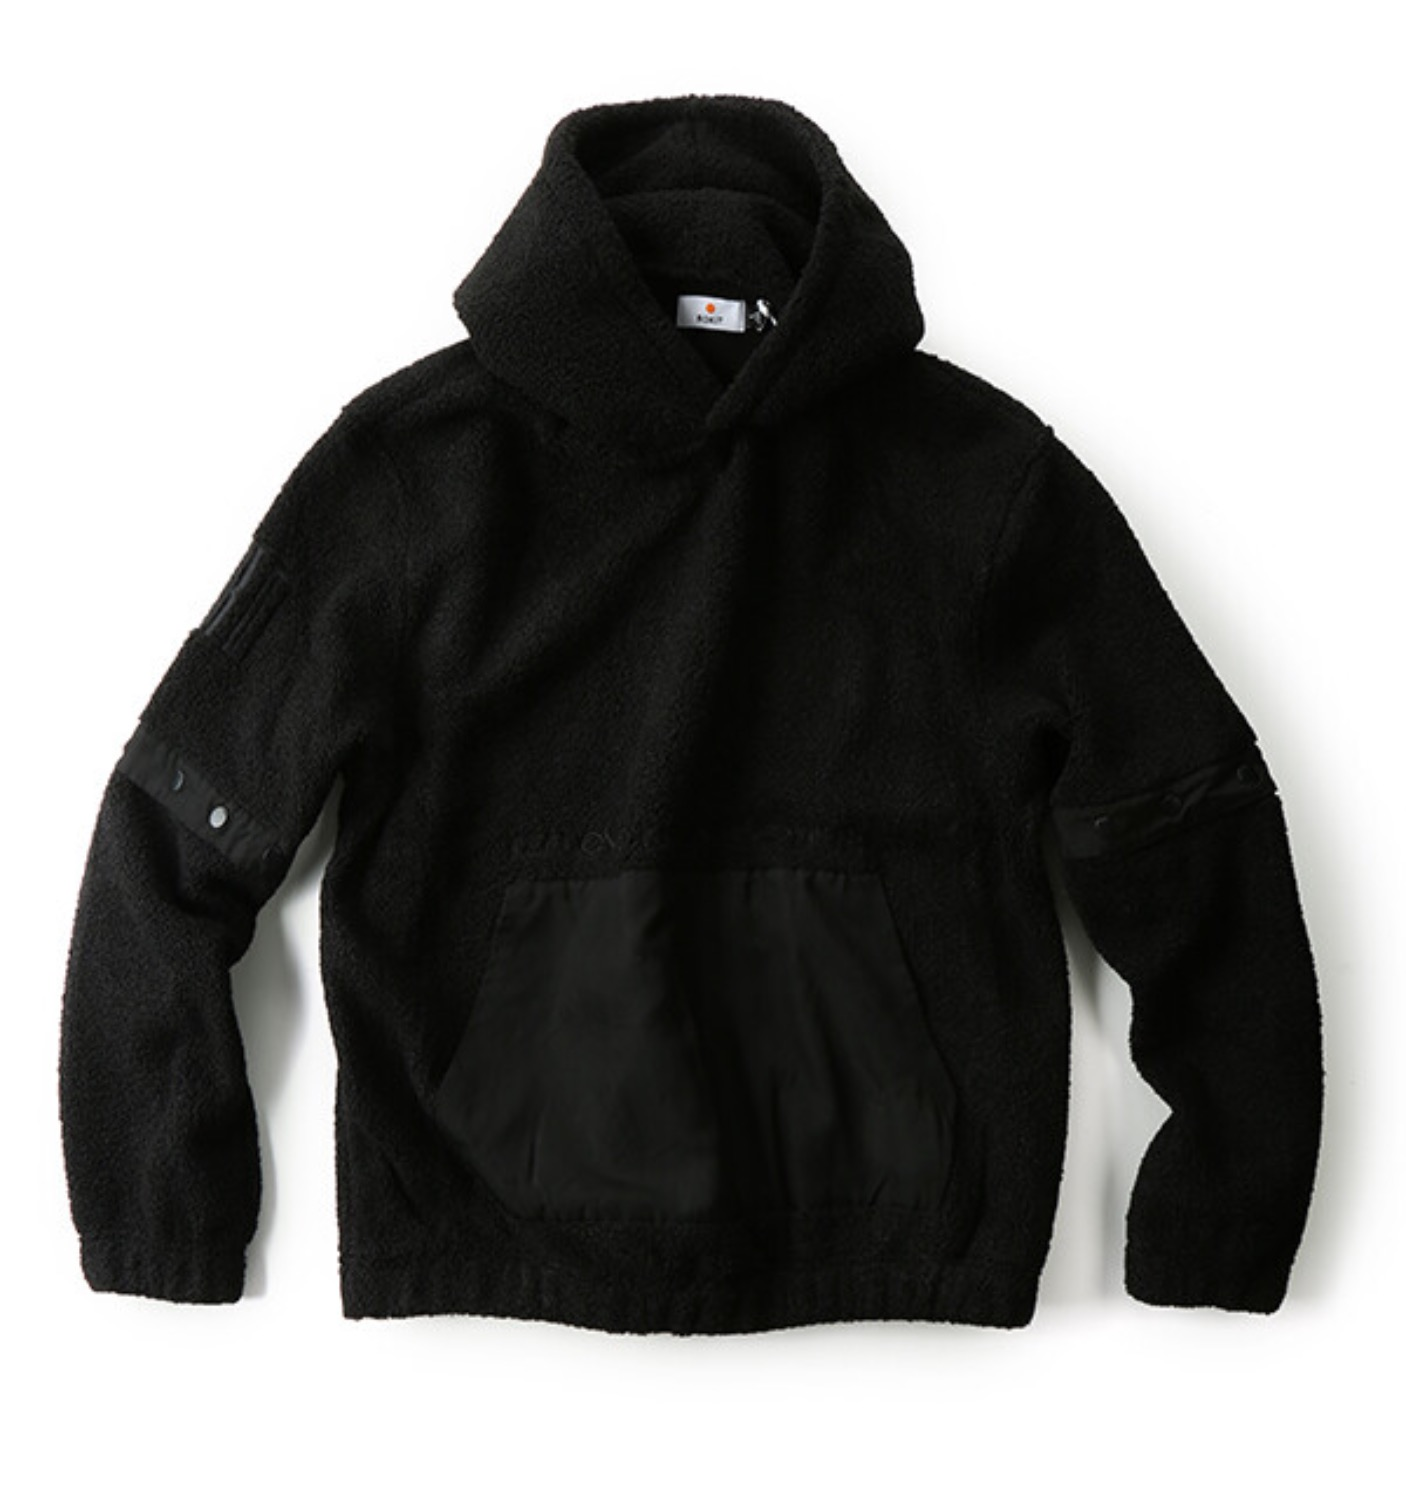 THE MALCOLM HOODIE BLACK(381-8501)